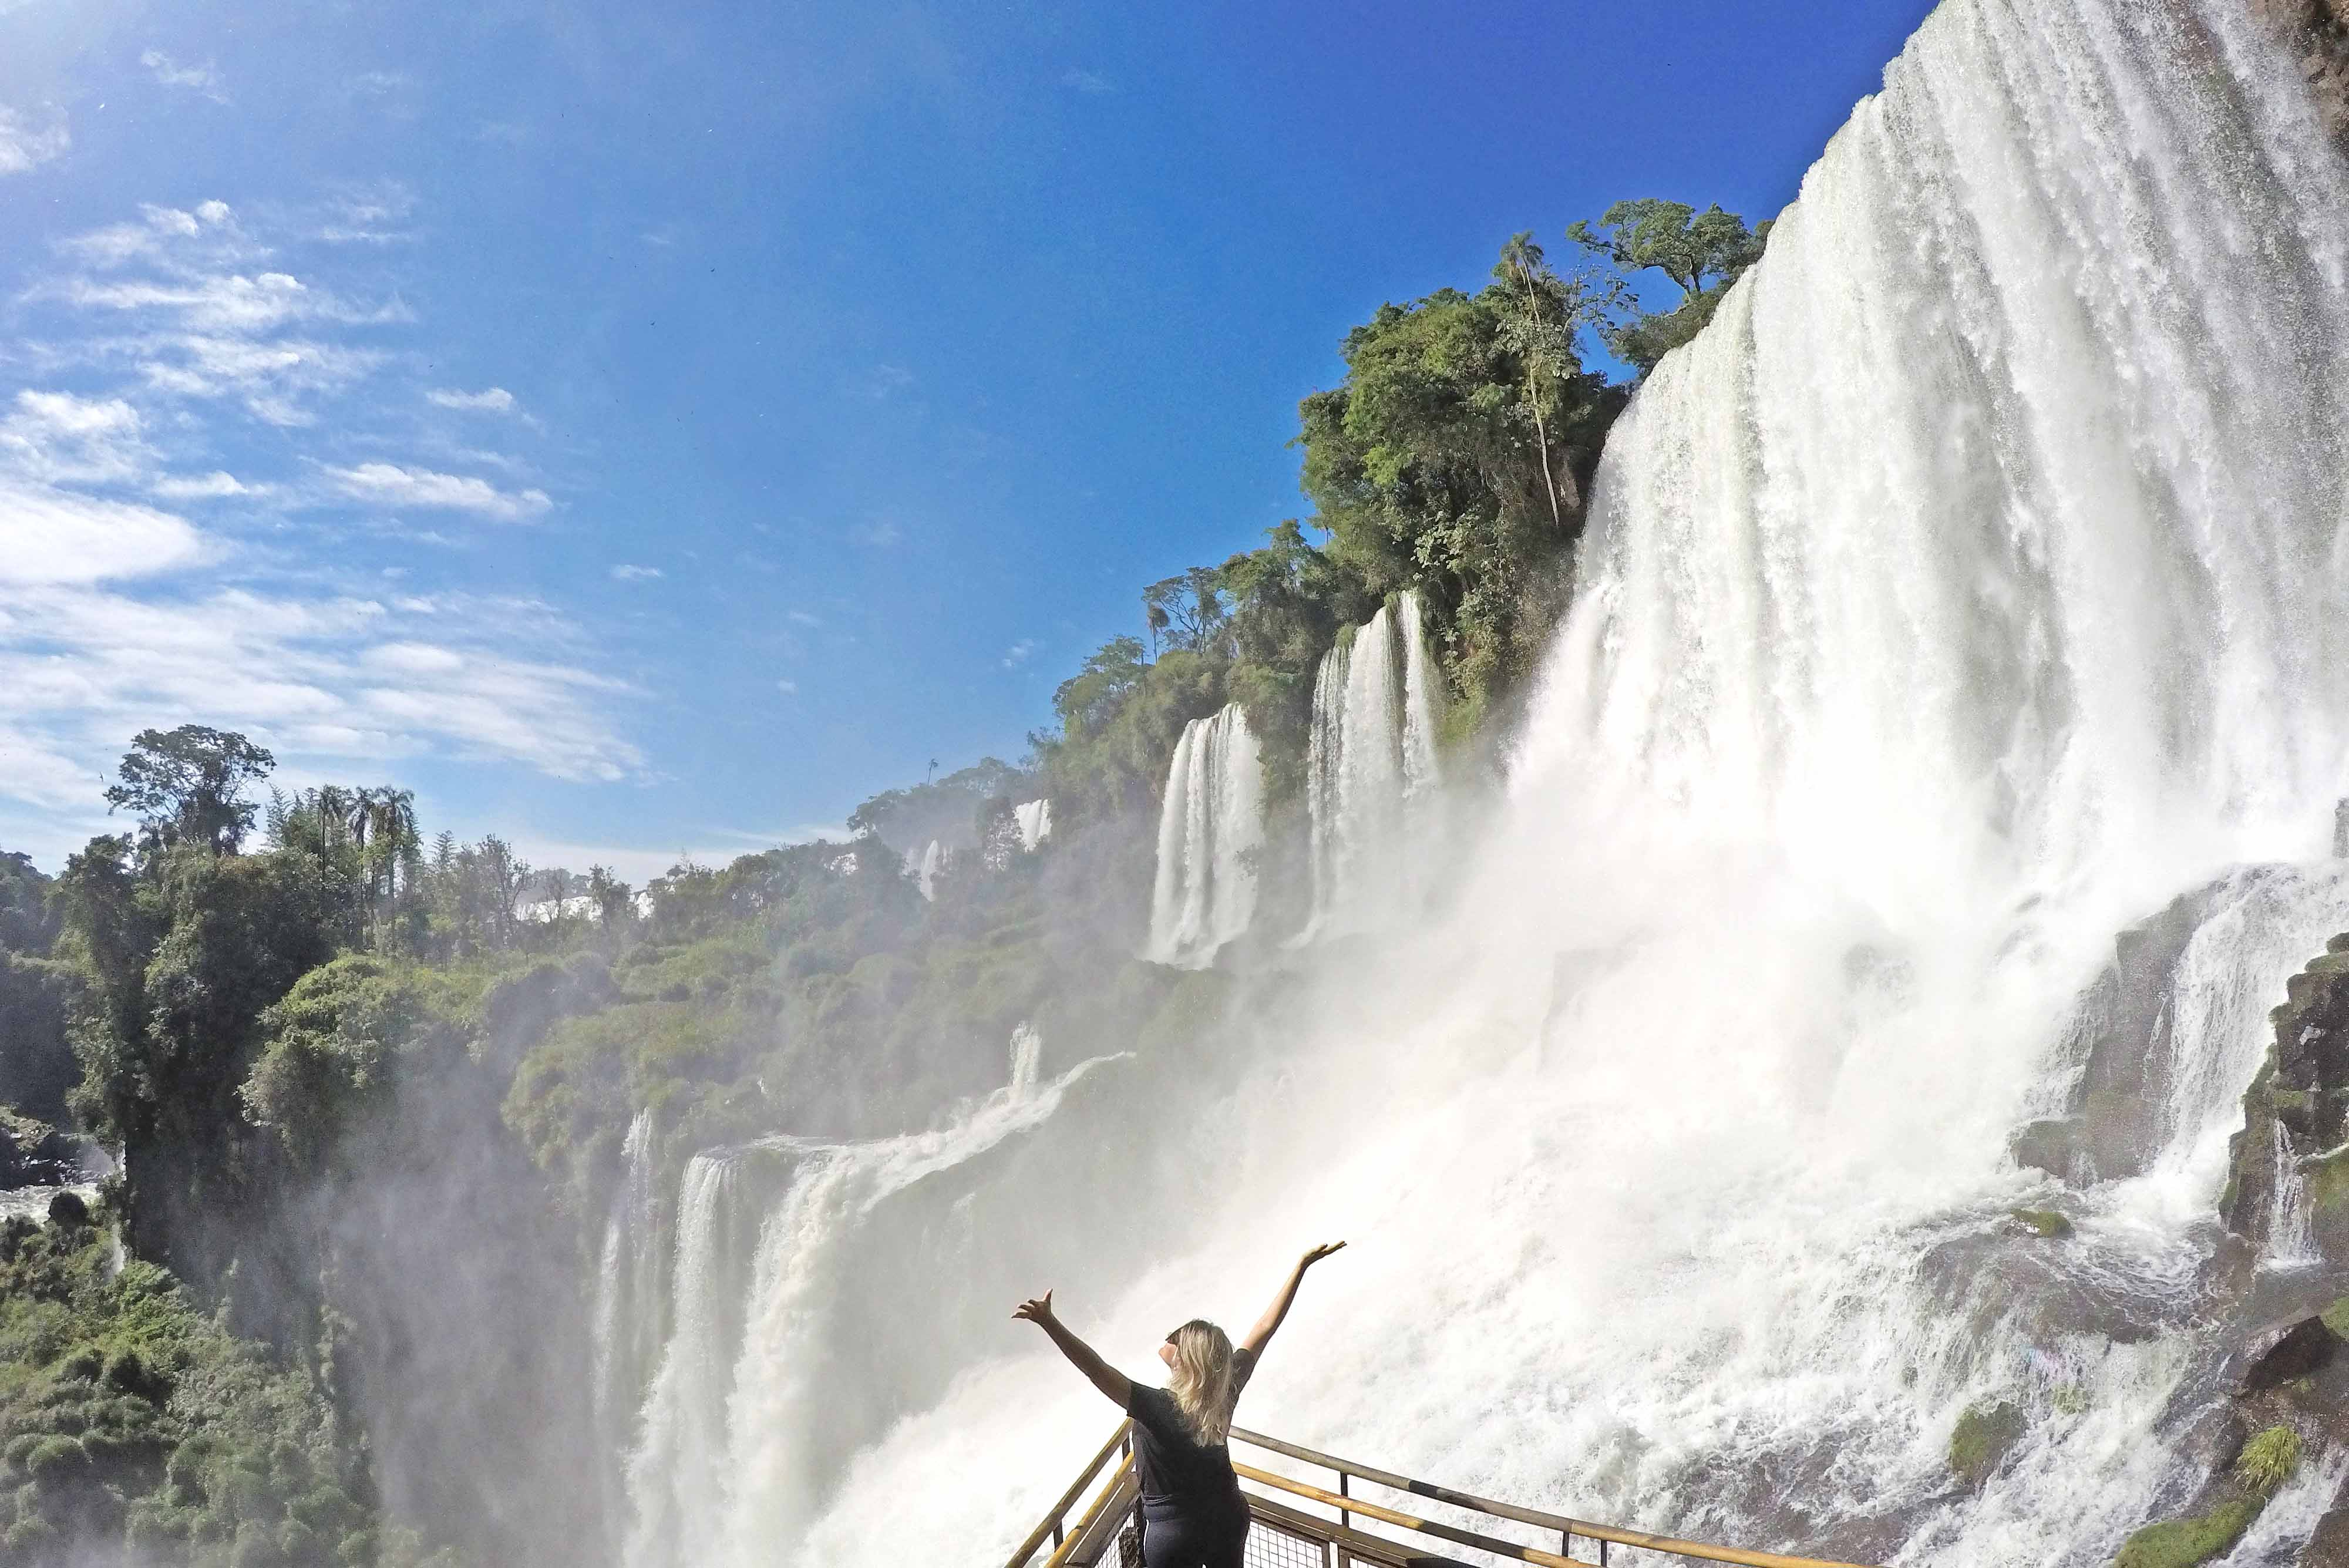 Salto Bossetti - Cataratas do Iguaçu